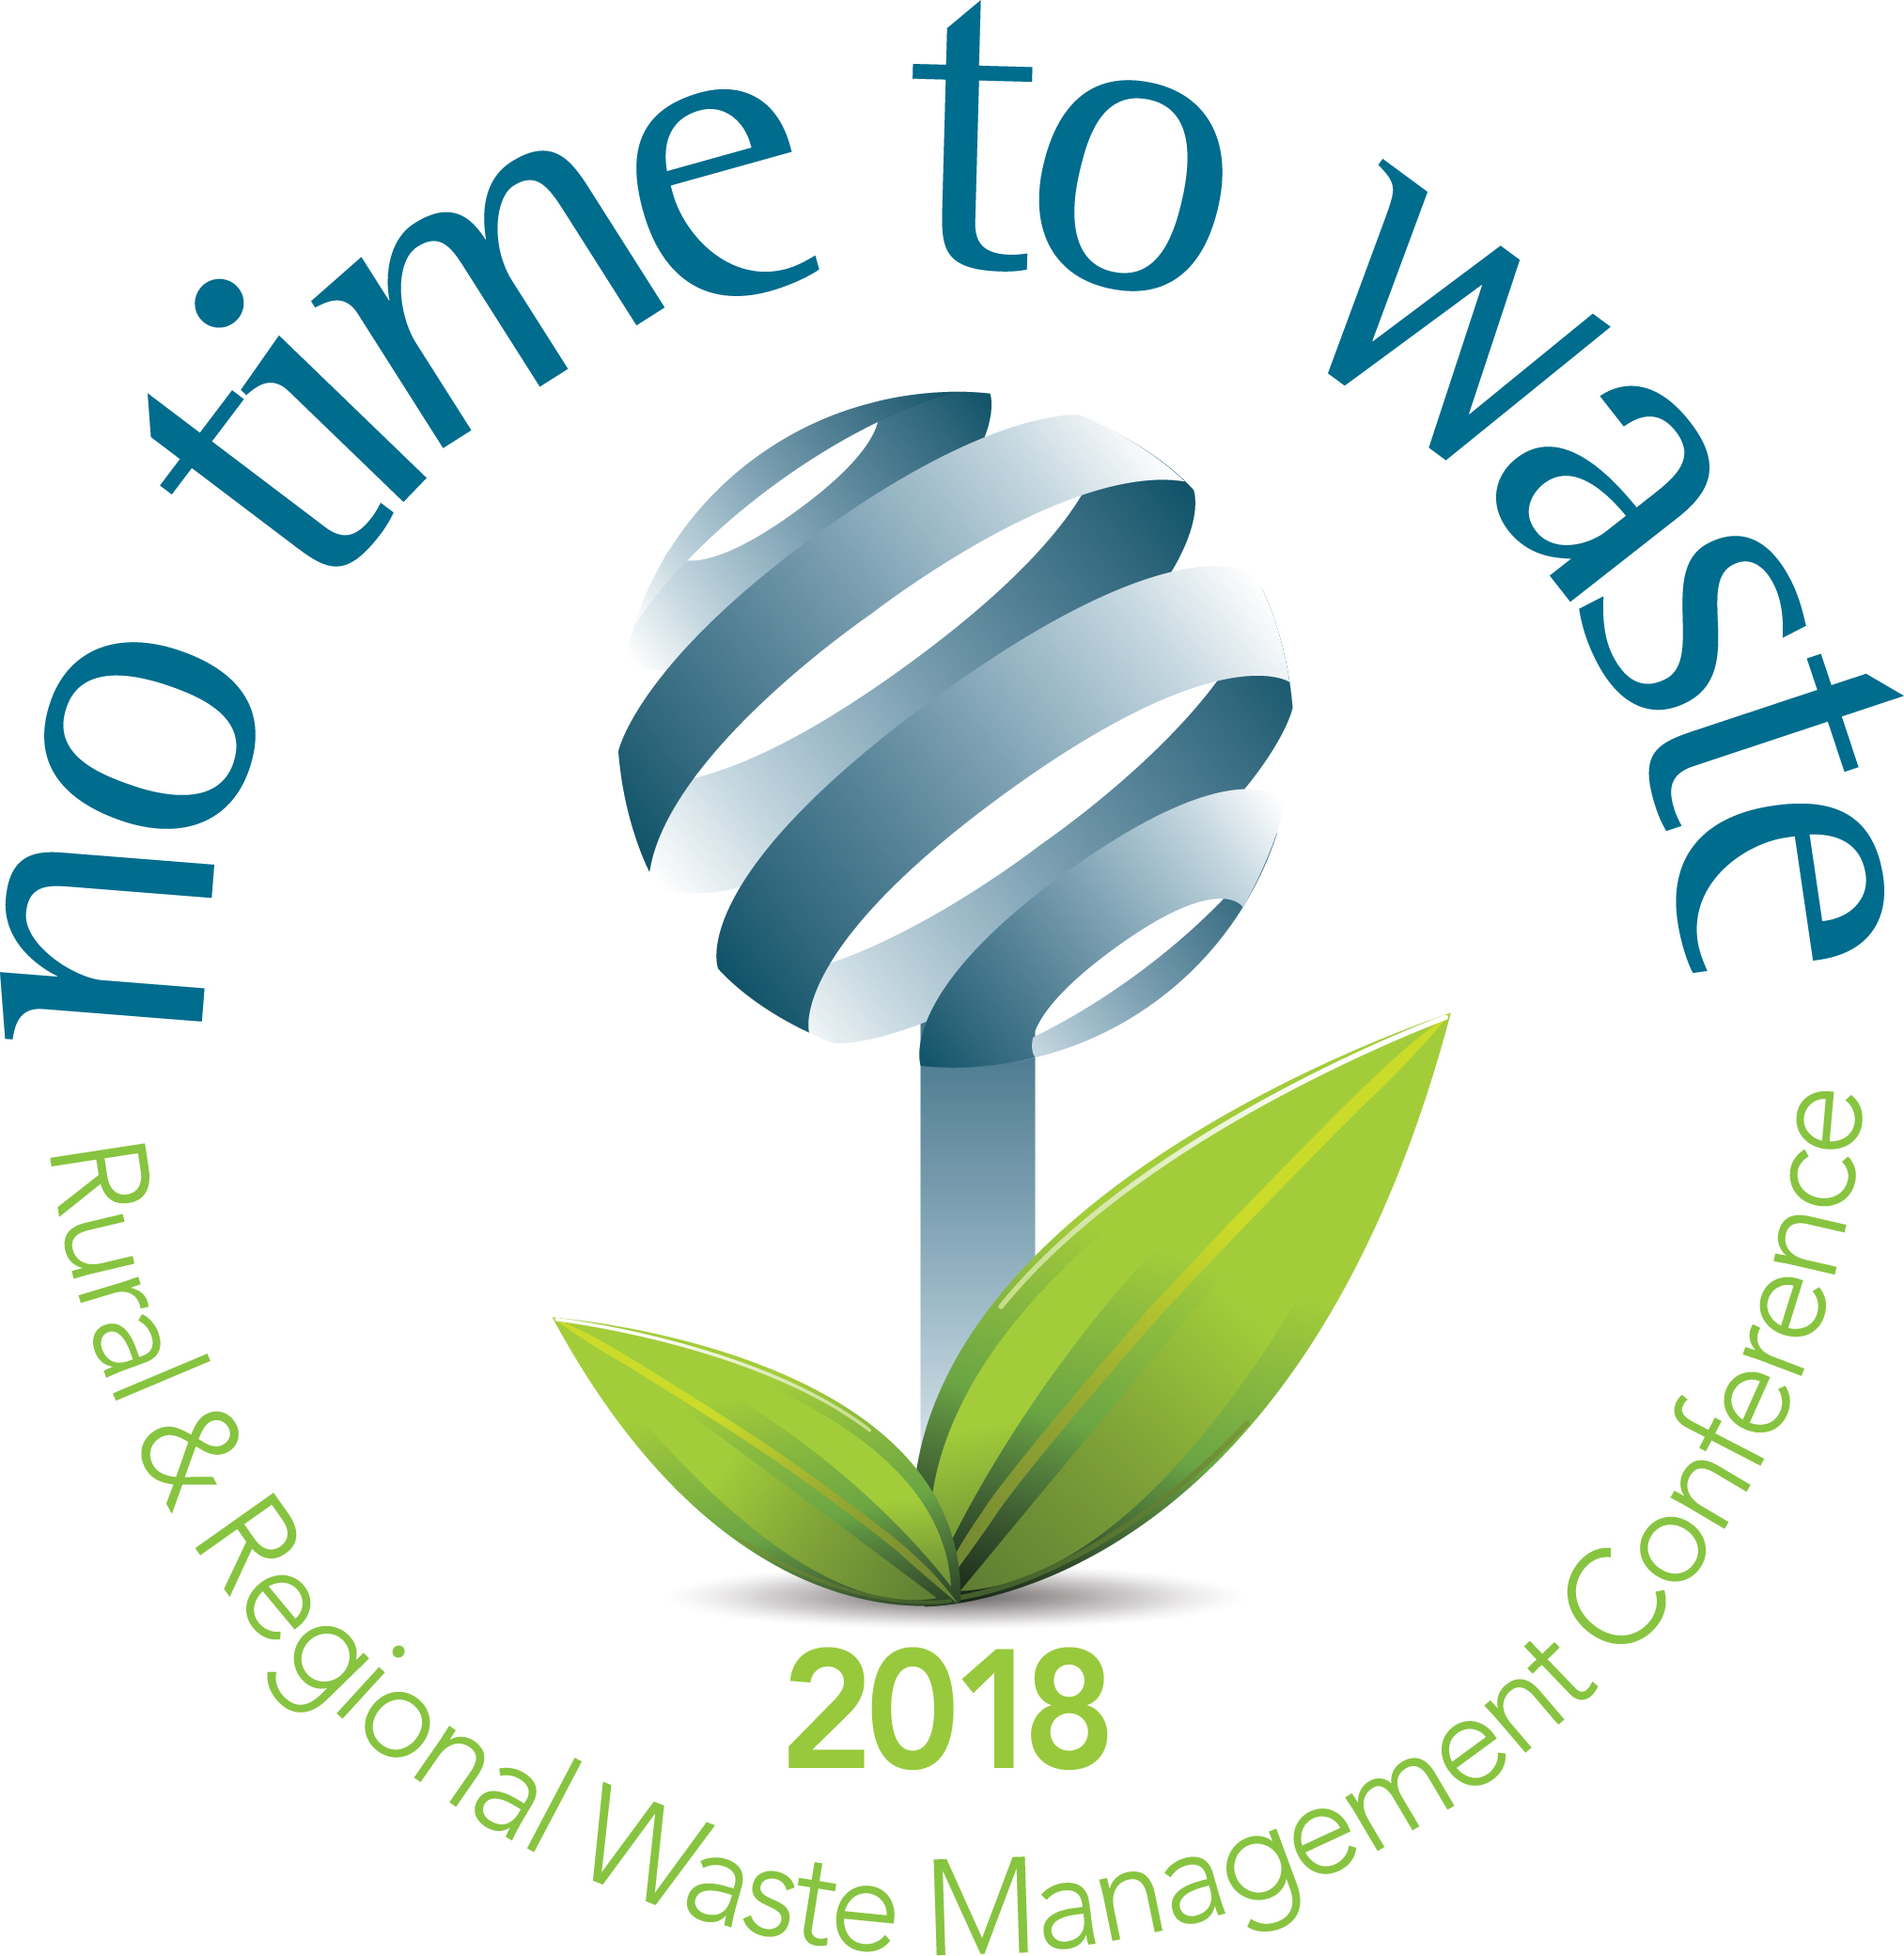 no time to waste logo 2018.jpg